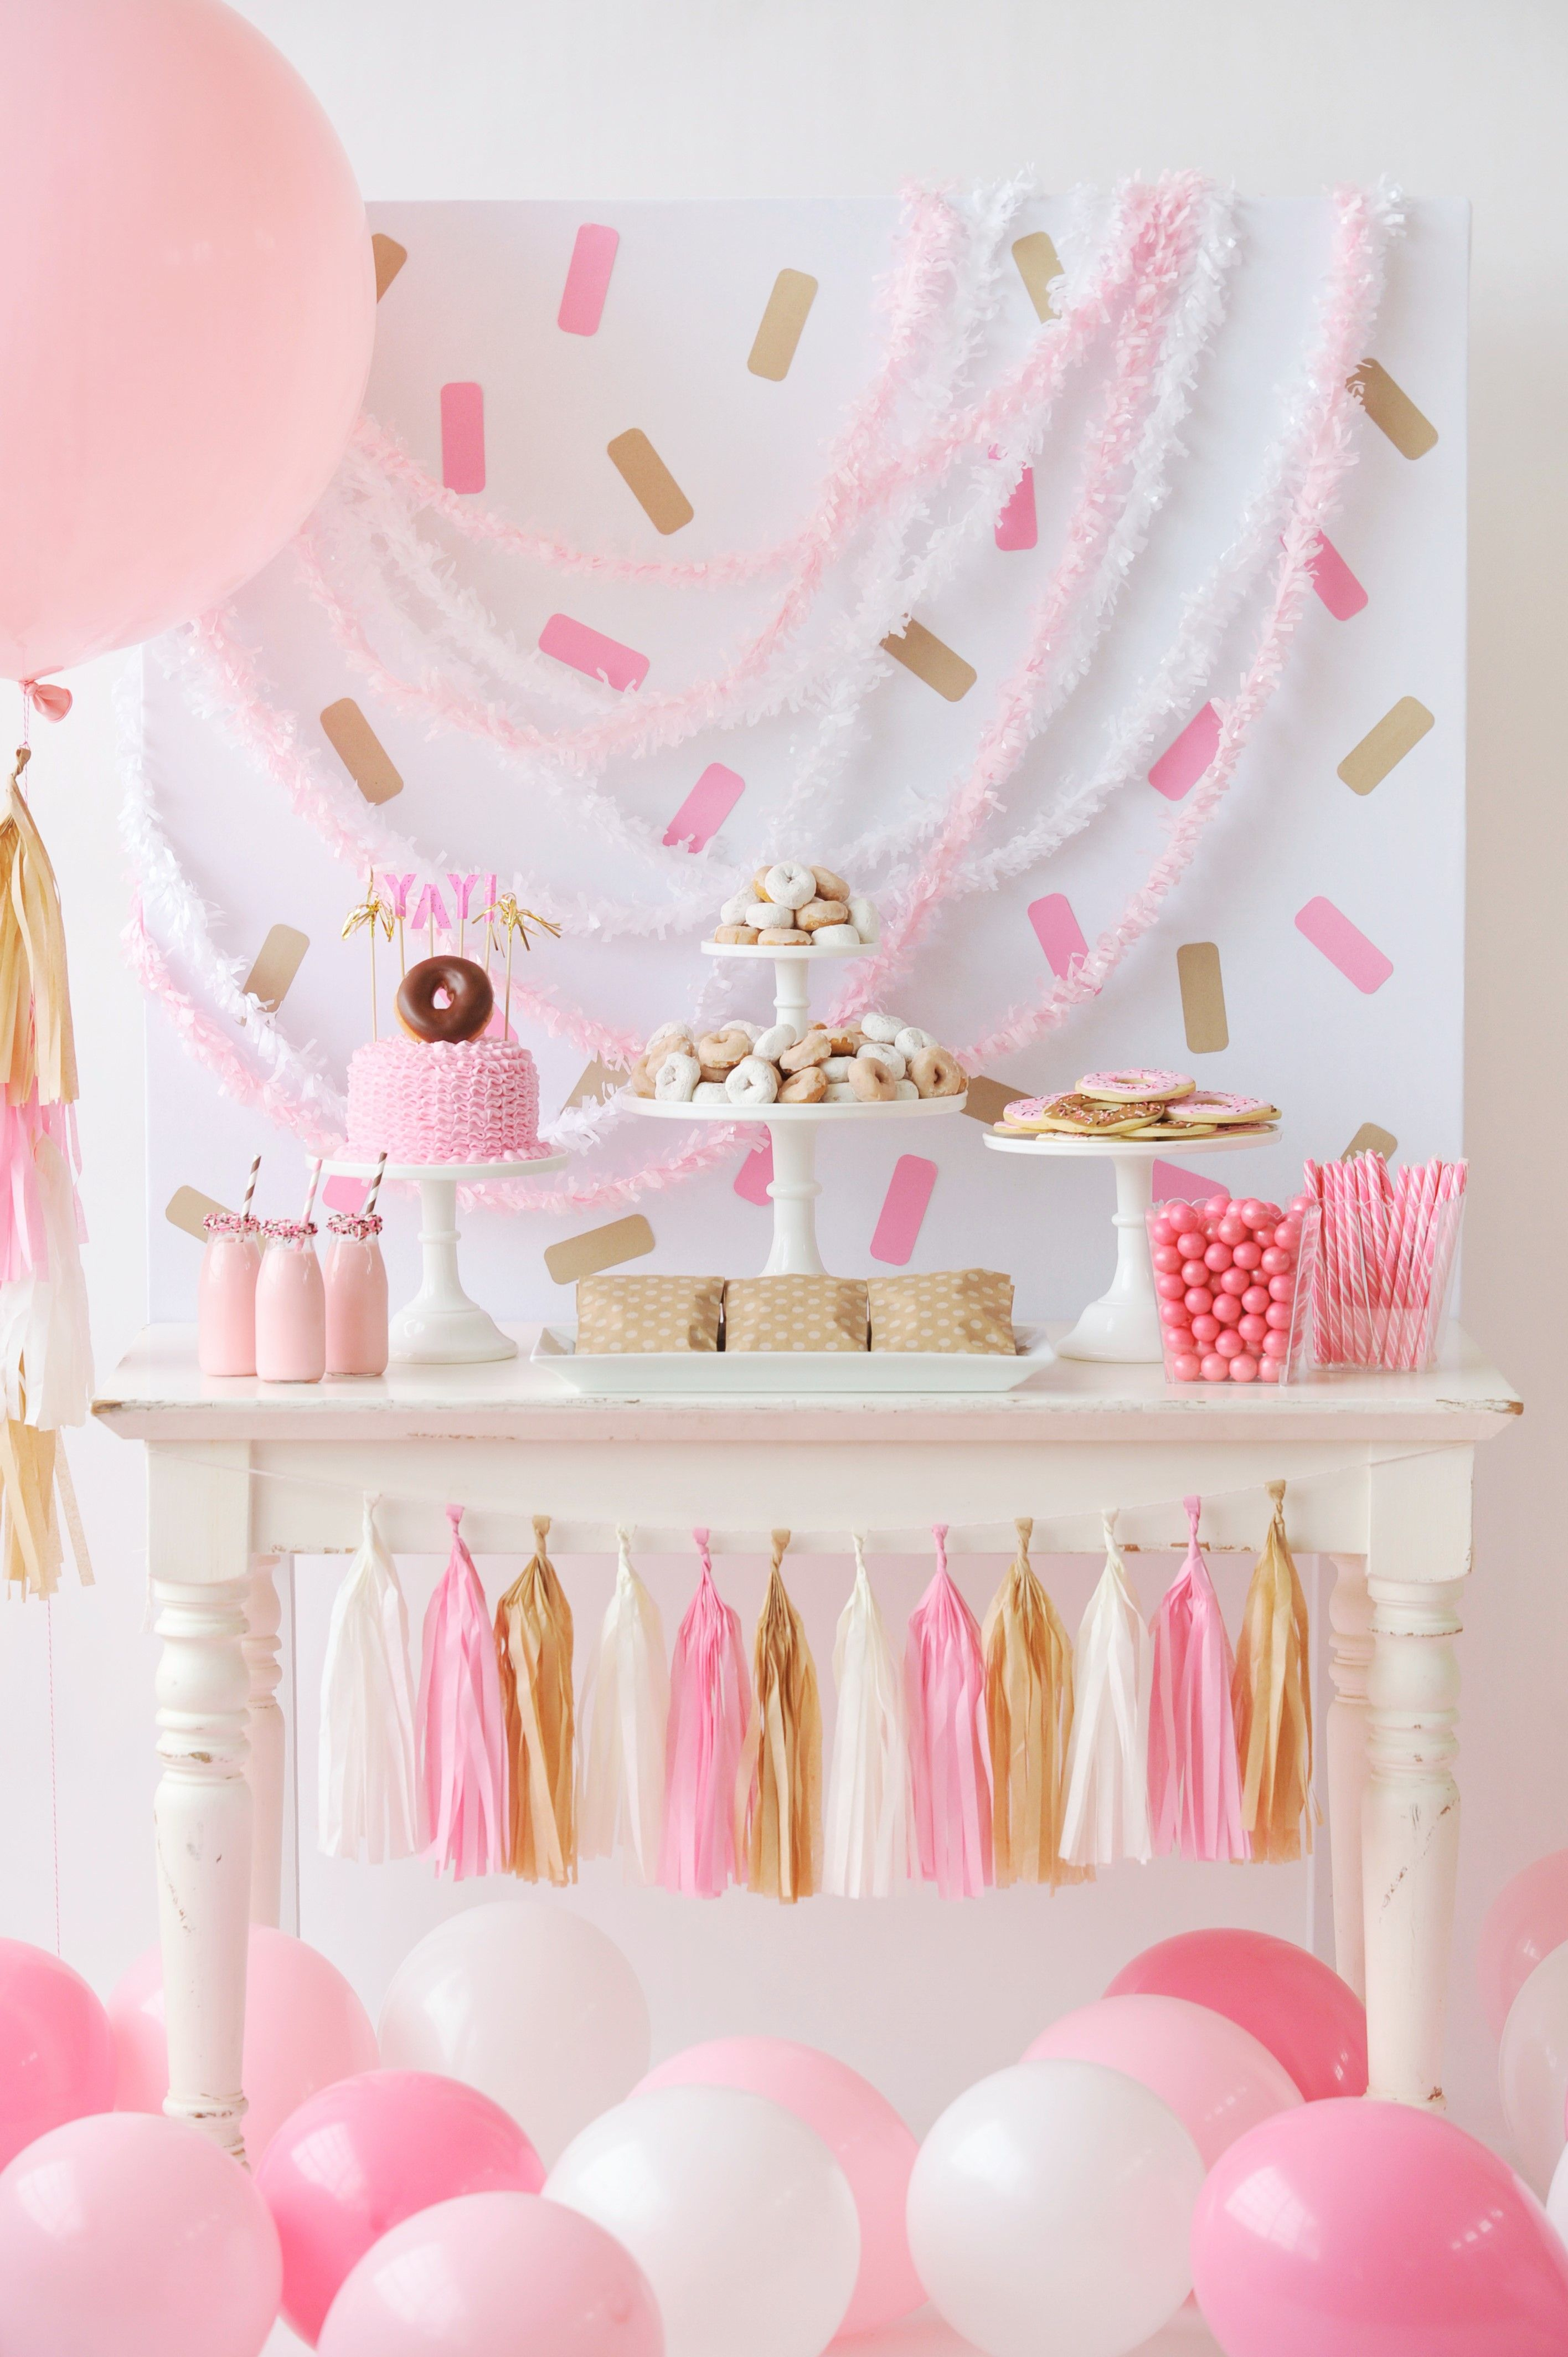 An adorable children's Donut themed Birthday Party that's perfect for a little girl or boy. Creative birthday party inspiration from Happy Wish Company.